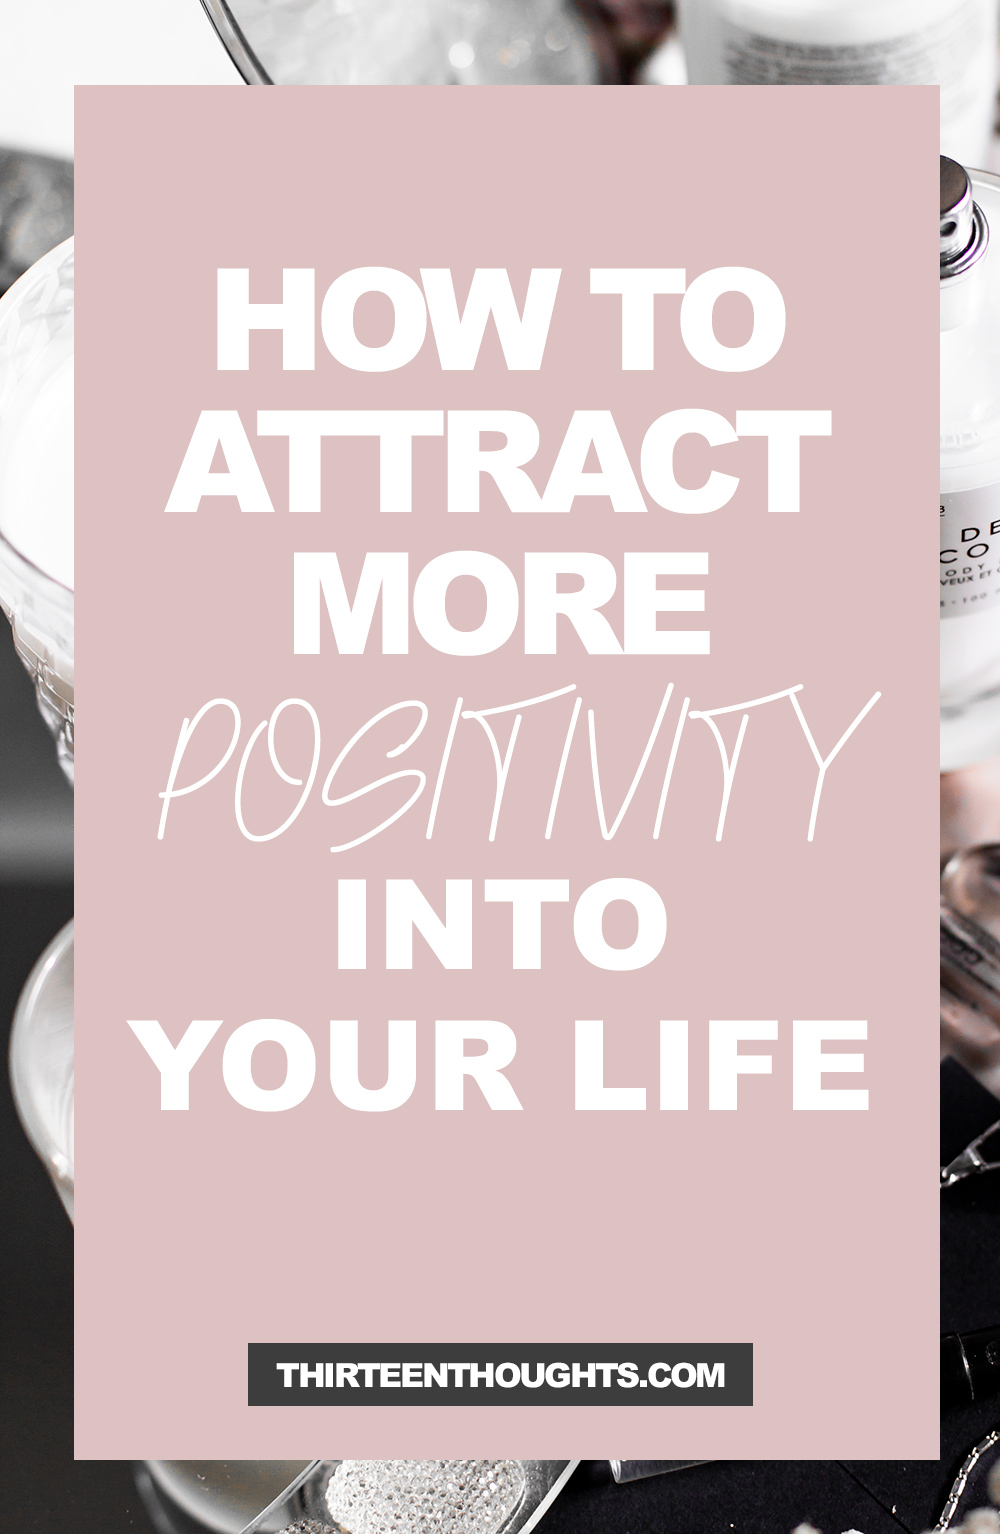 How to Attract More Positivity Into Your Life